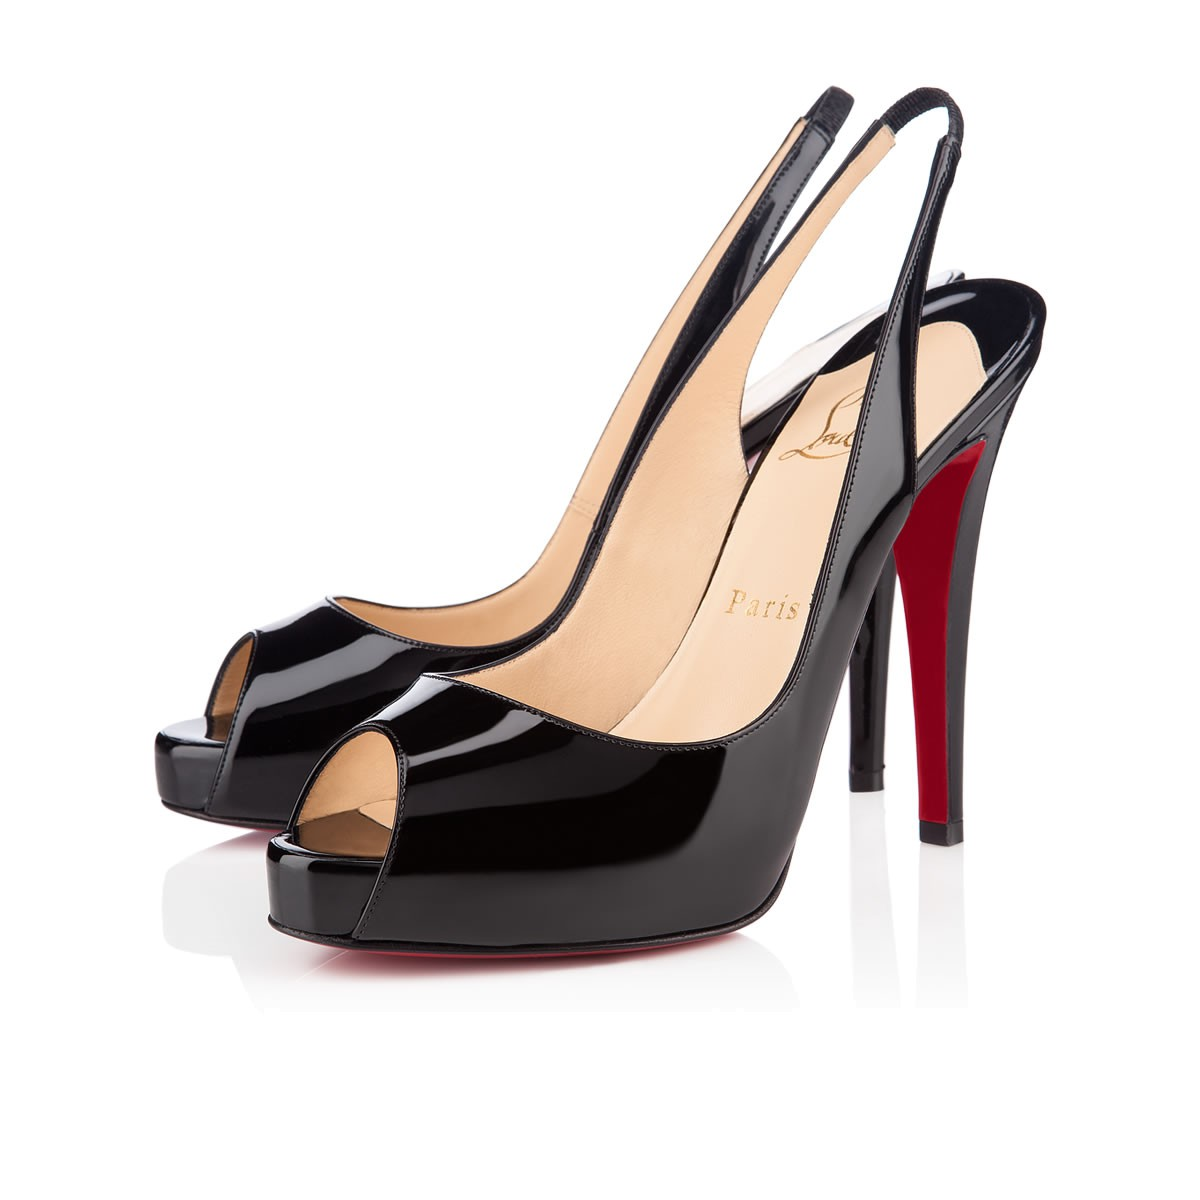 abbb658b852 Christian Louboutin Private Number Patent Peep-Toe Red Sole Slingback In  Black